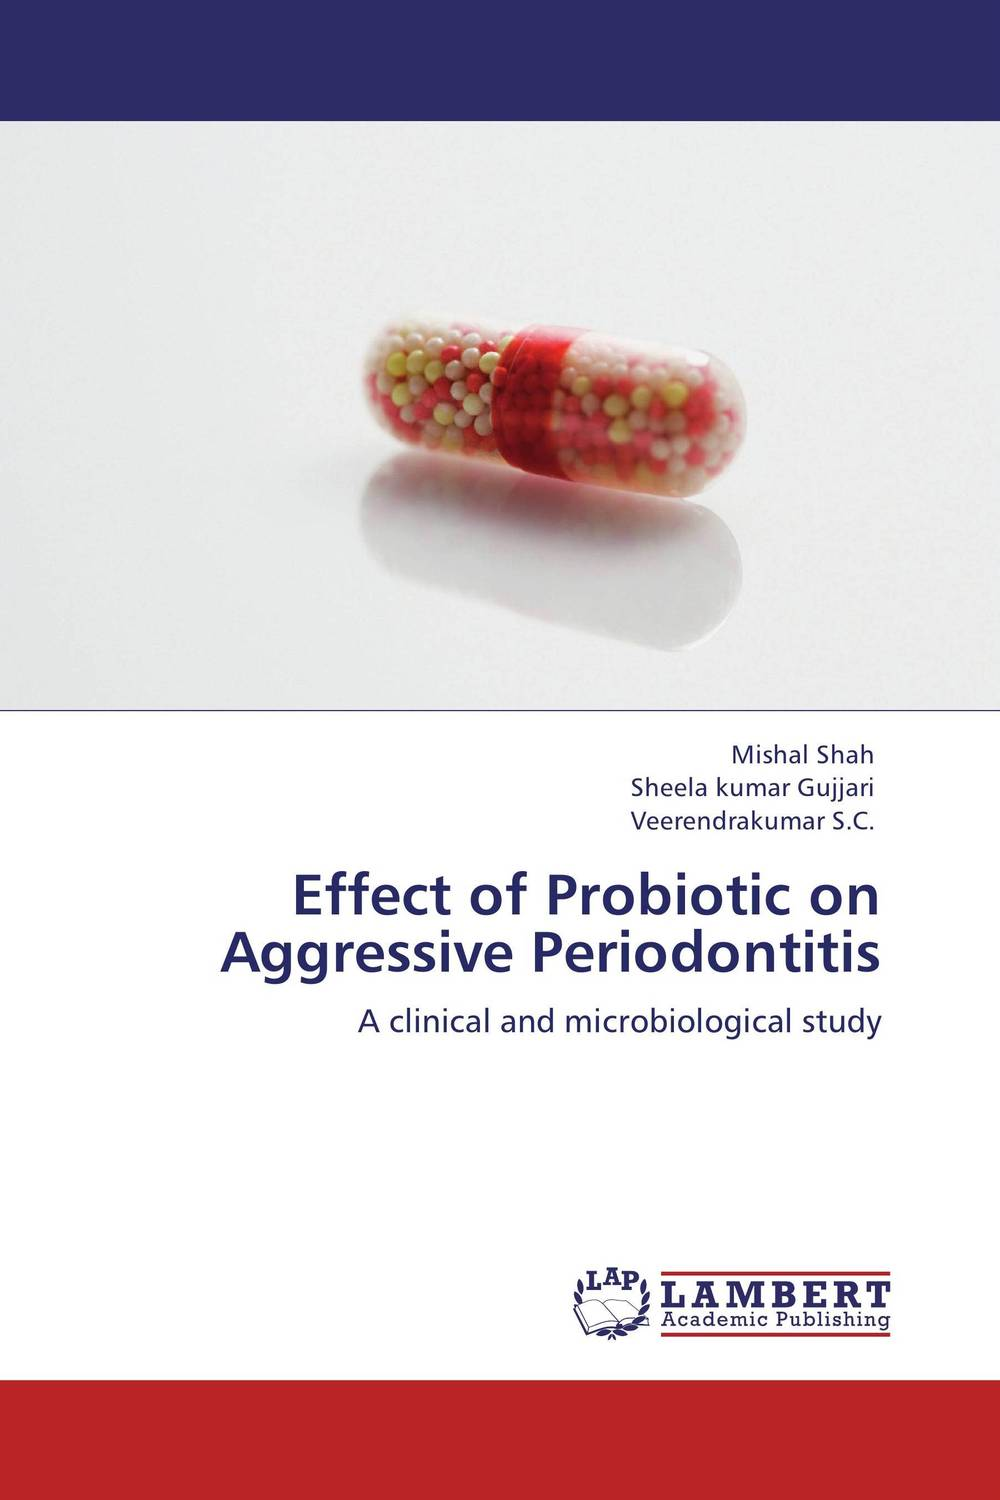 Effect of Probiotic on Aggressive Periodontitis eric carle mister seahorse